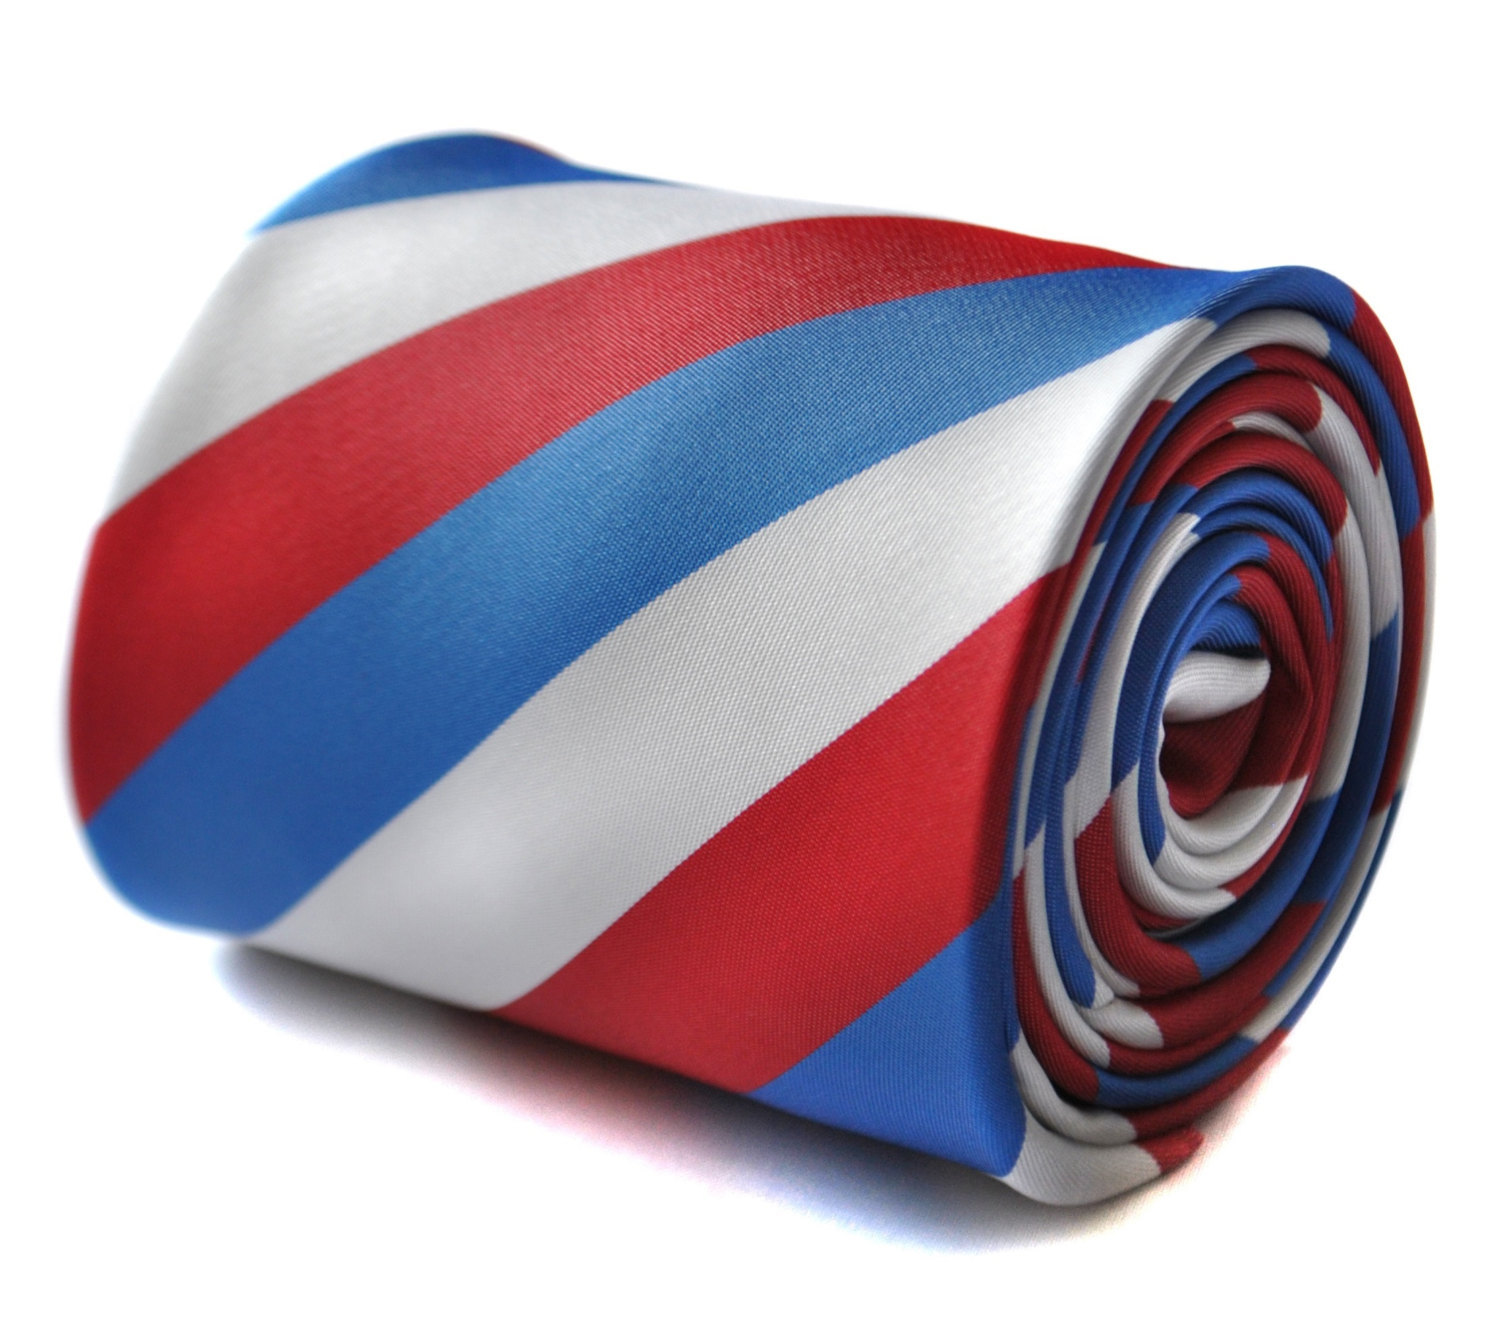 Red, blue and white striped tie with floral design to the rear by Frederick Thom